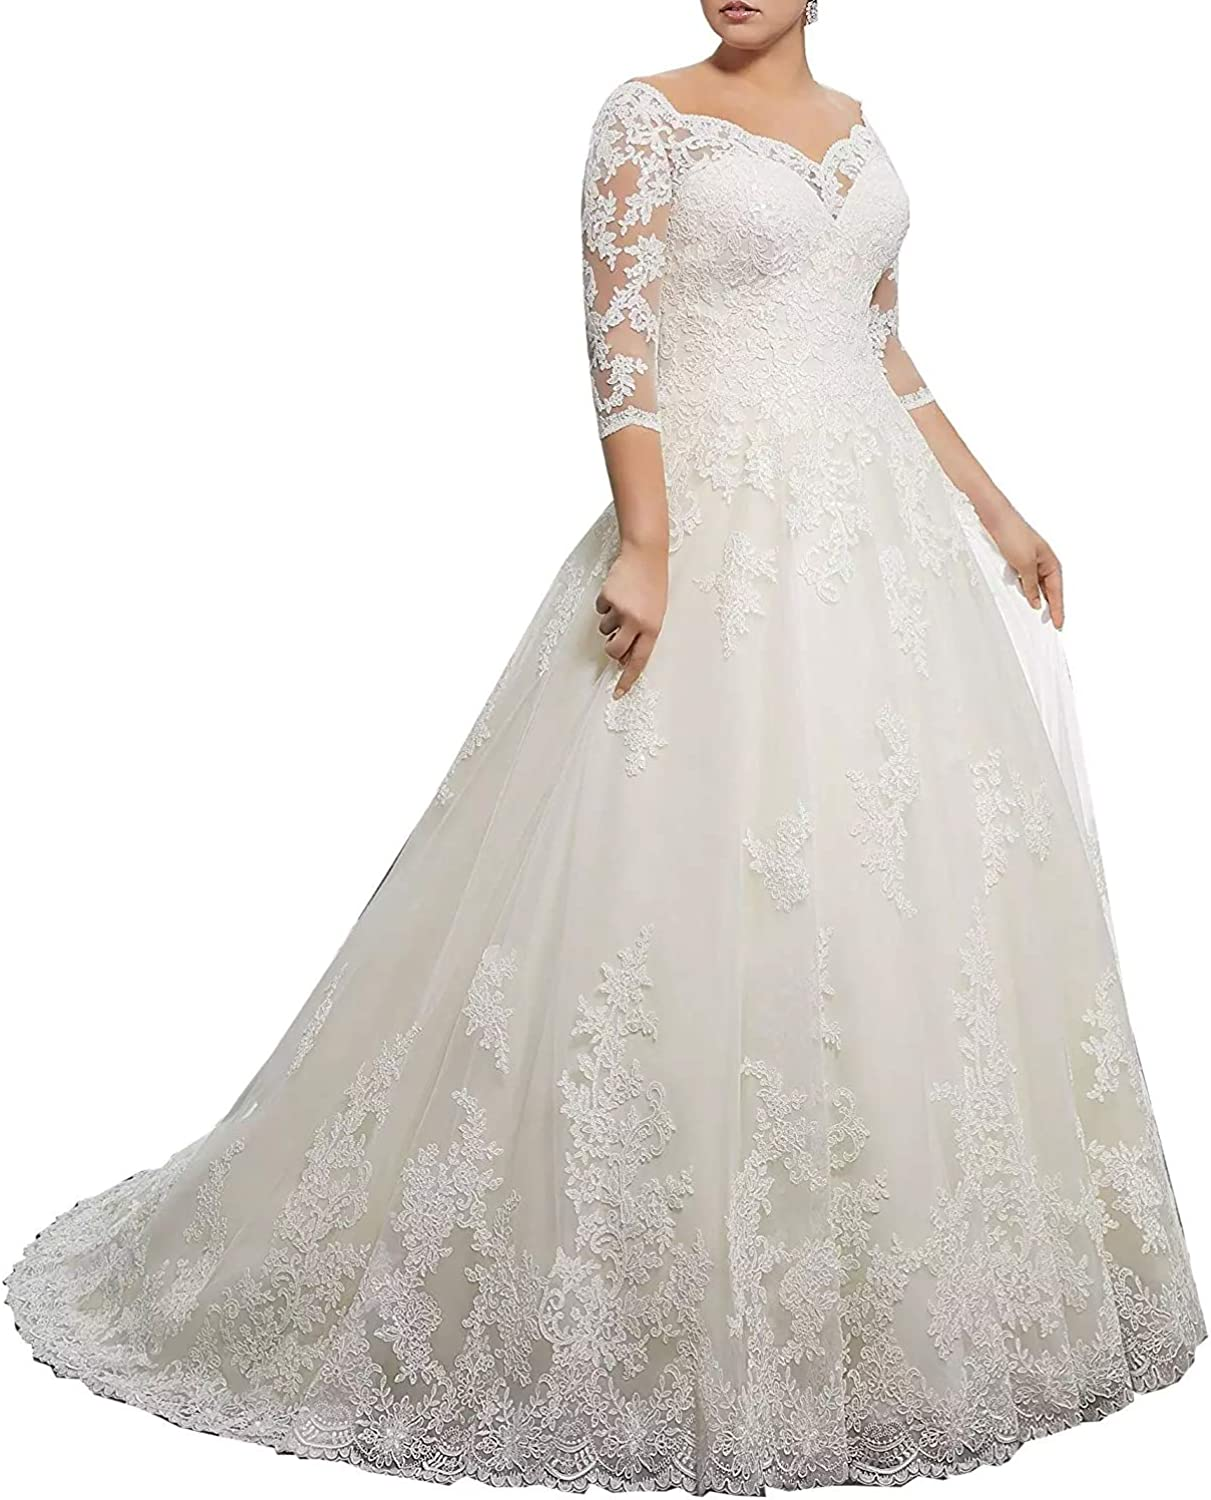 Elegant Womens Plus Size Wedding Dresses for Bride Long Appliques Lace Ball Gowns 3//4 Sleeves Bridal Dress